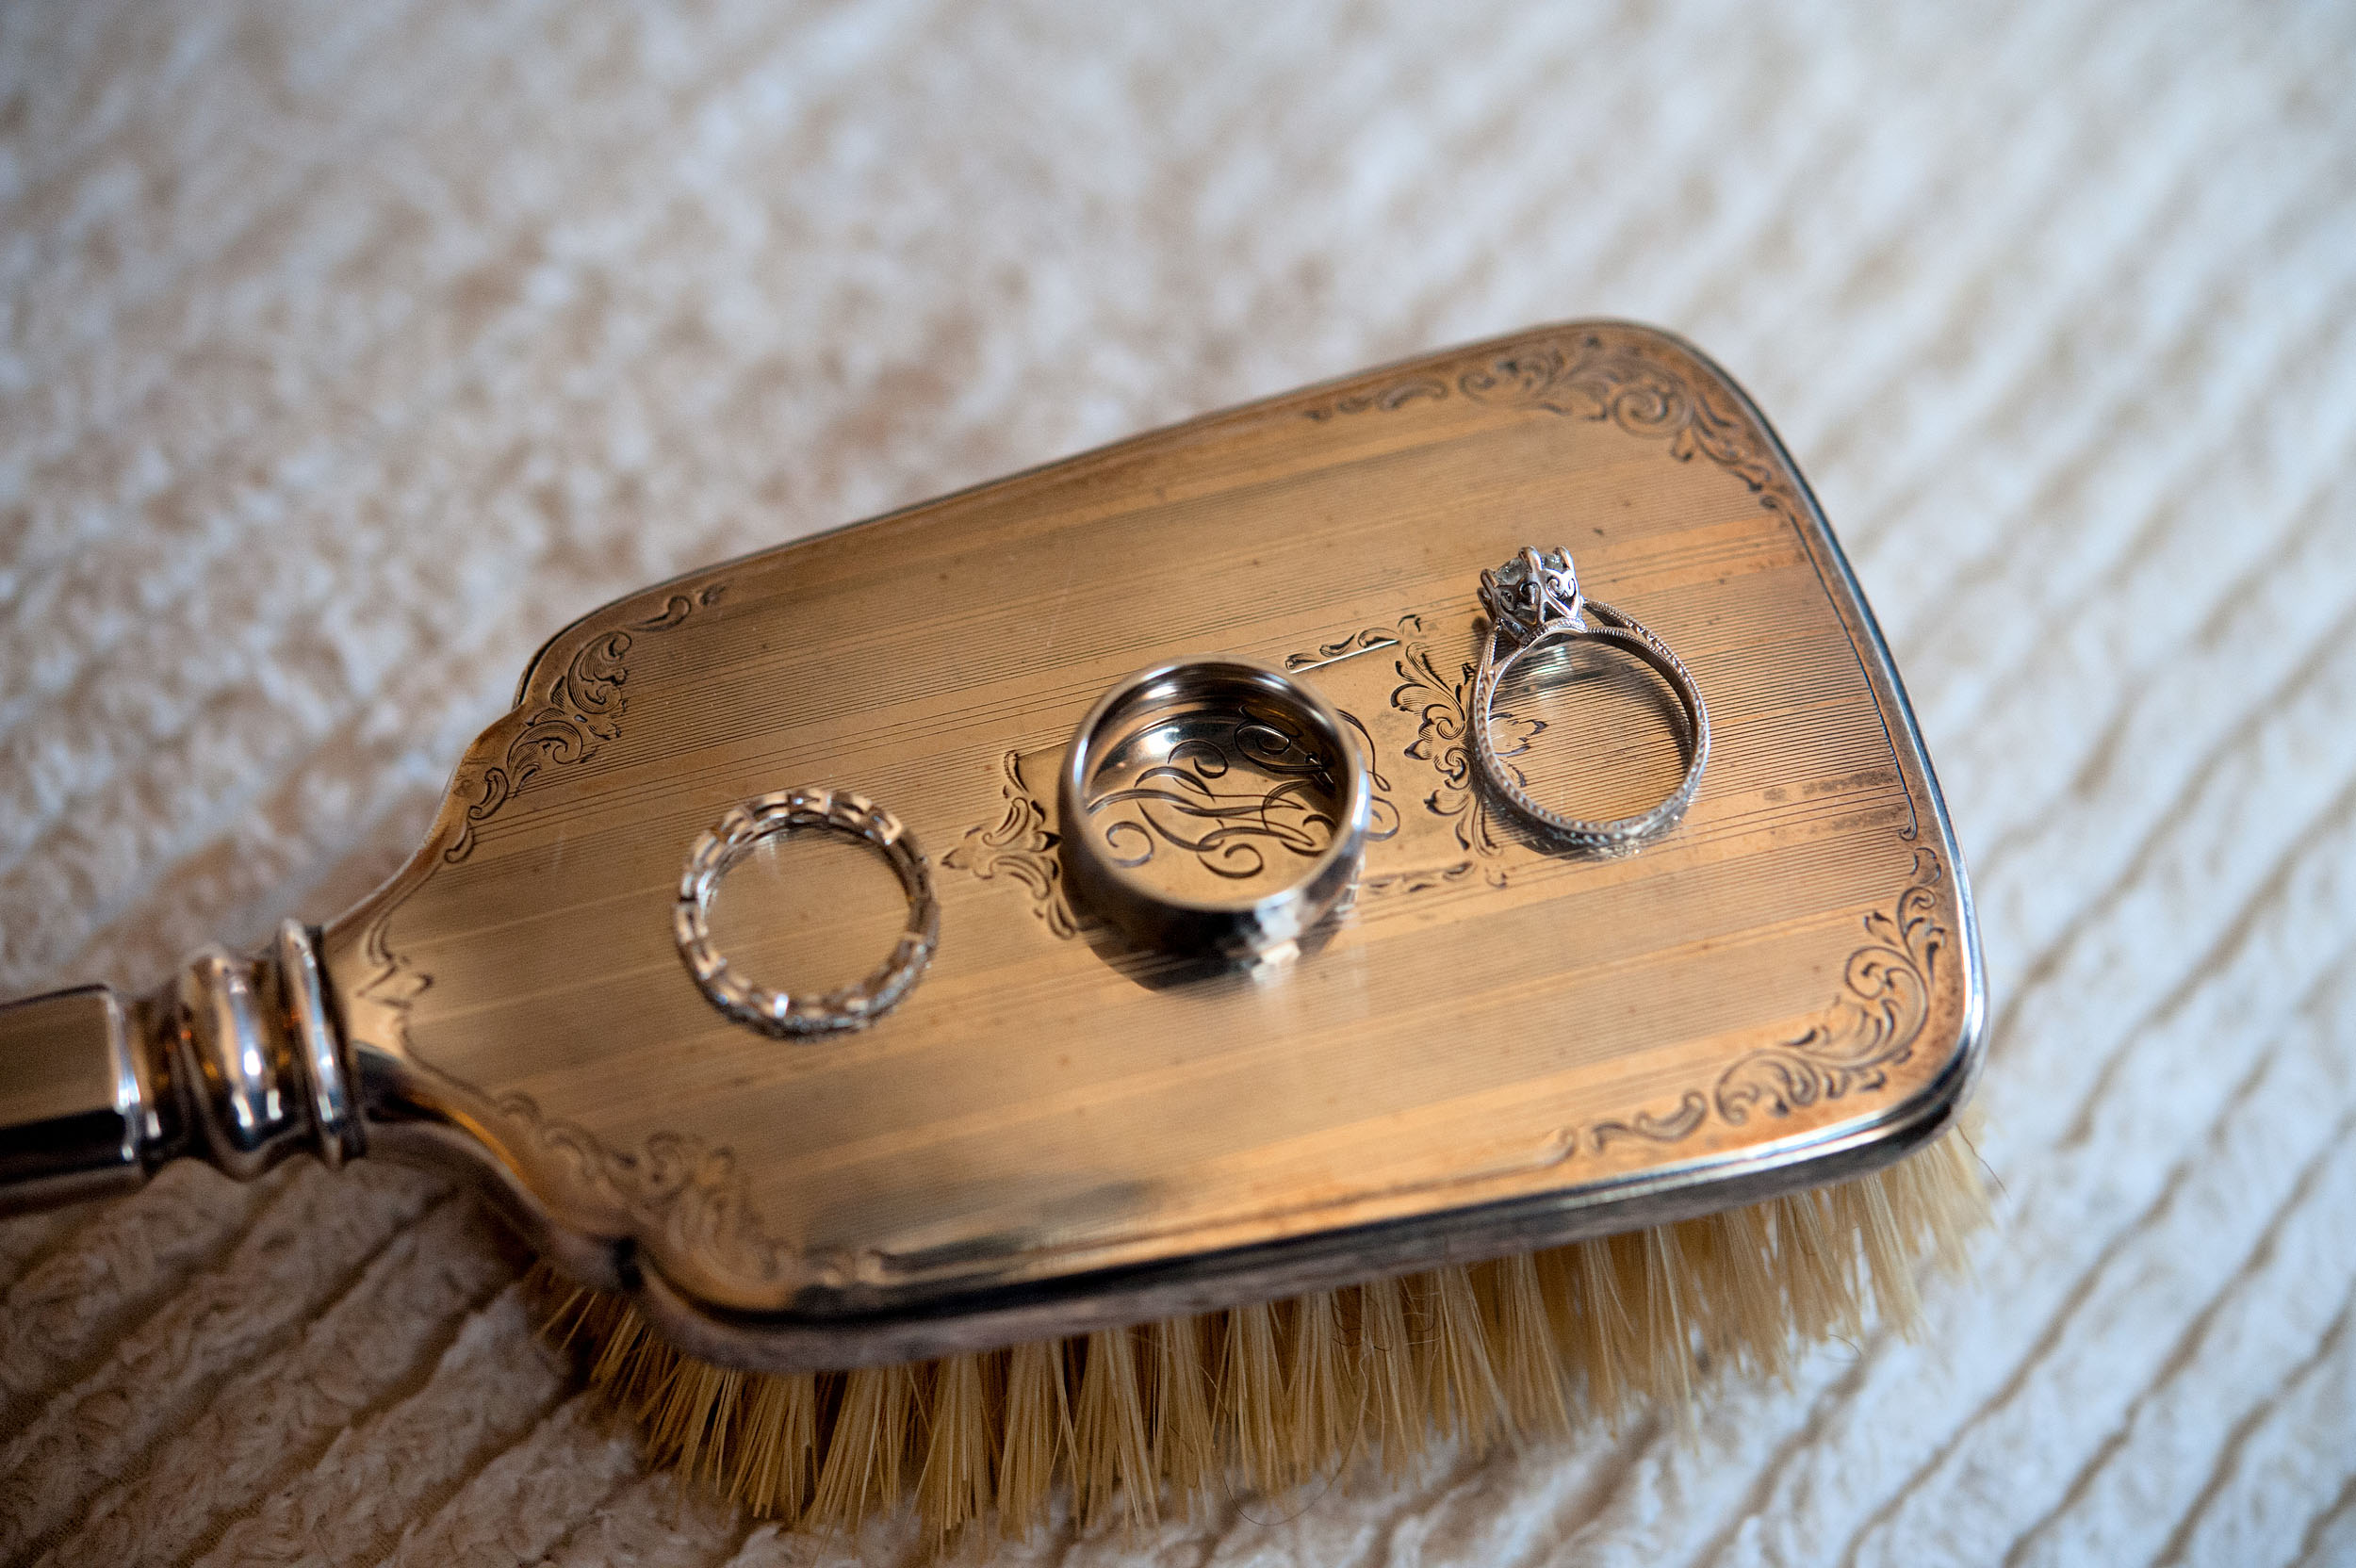 Bride's and Groom's rings on a silver hairbrush at the Oviatt Penthouse in Downtown Los Angeles.